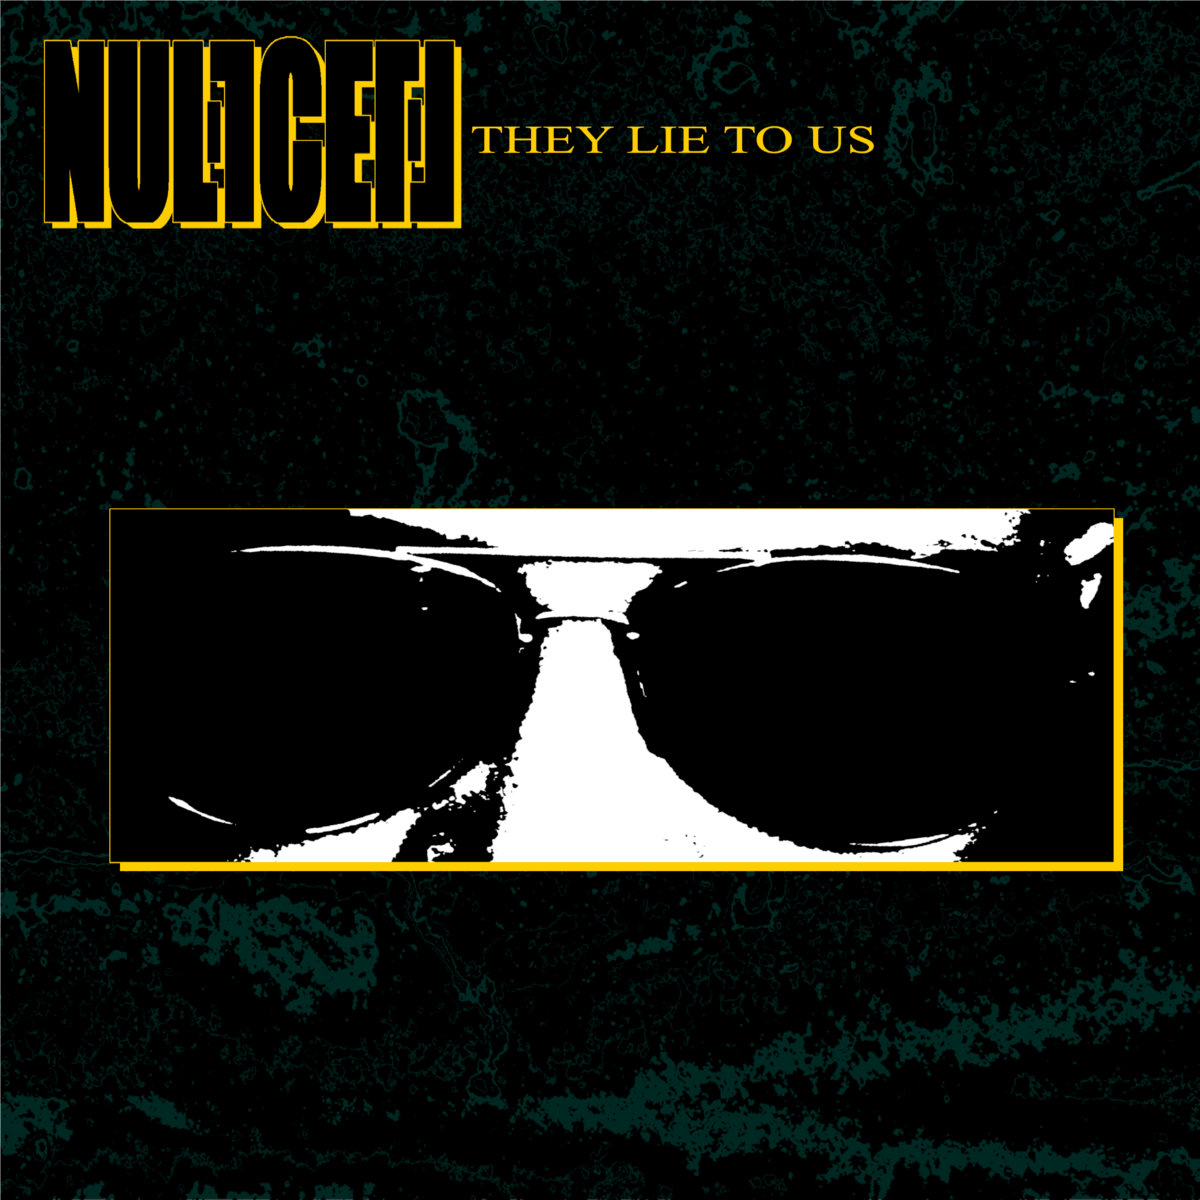 They Lie To Us (Single) by Null Cell